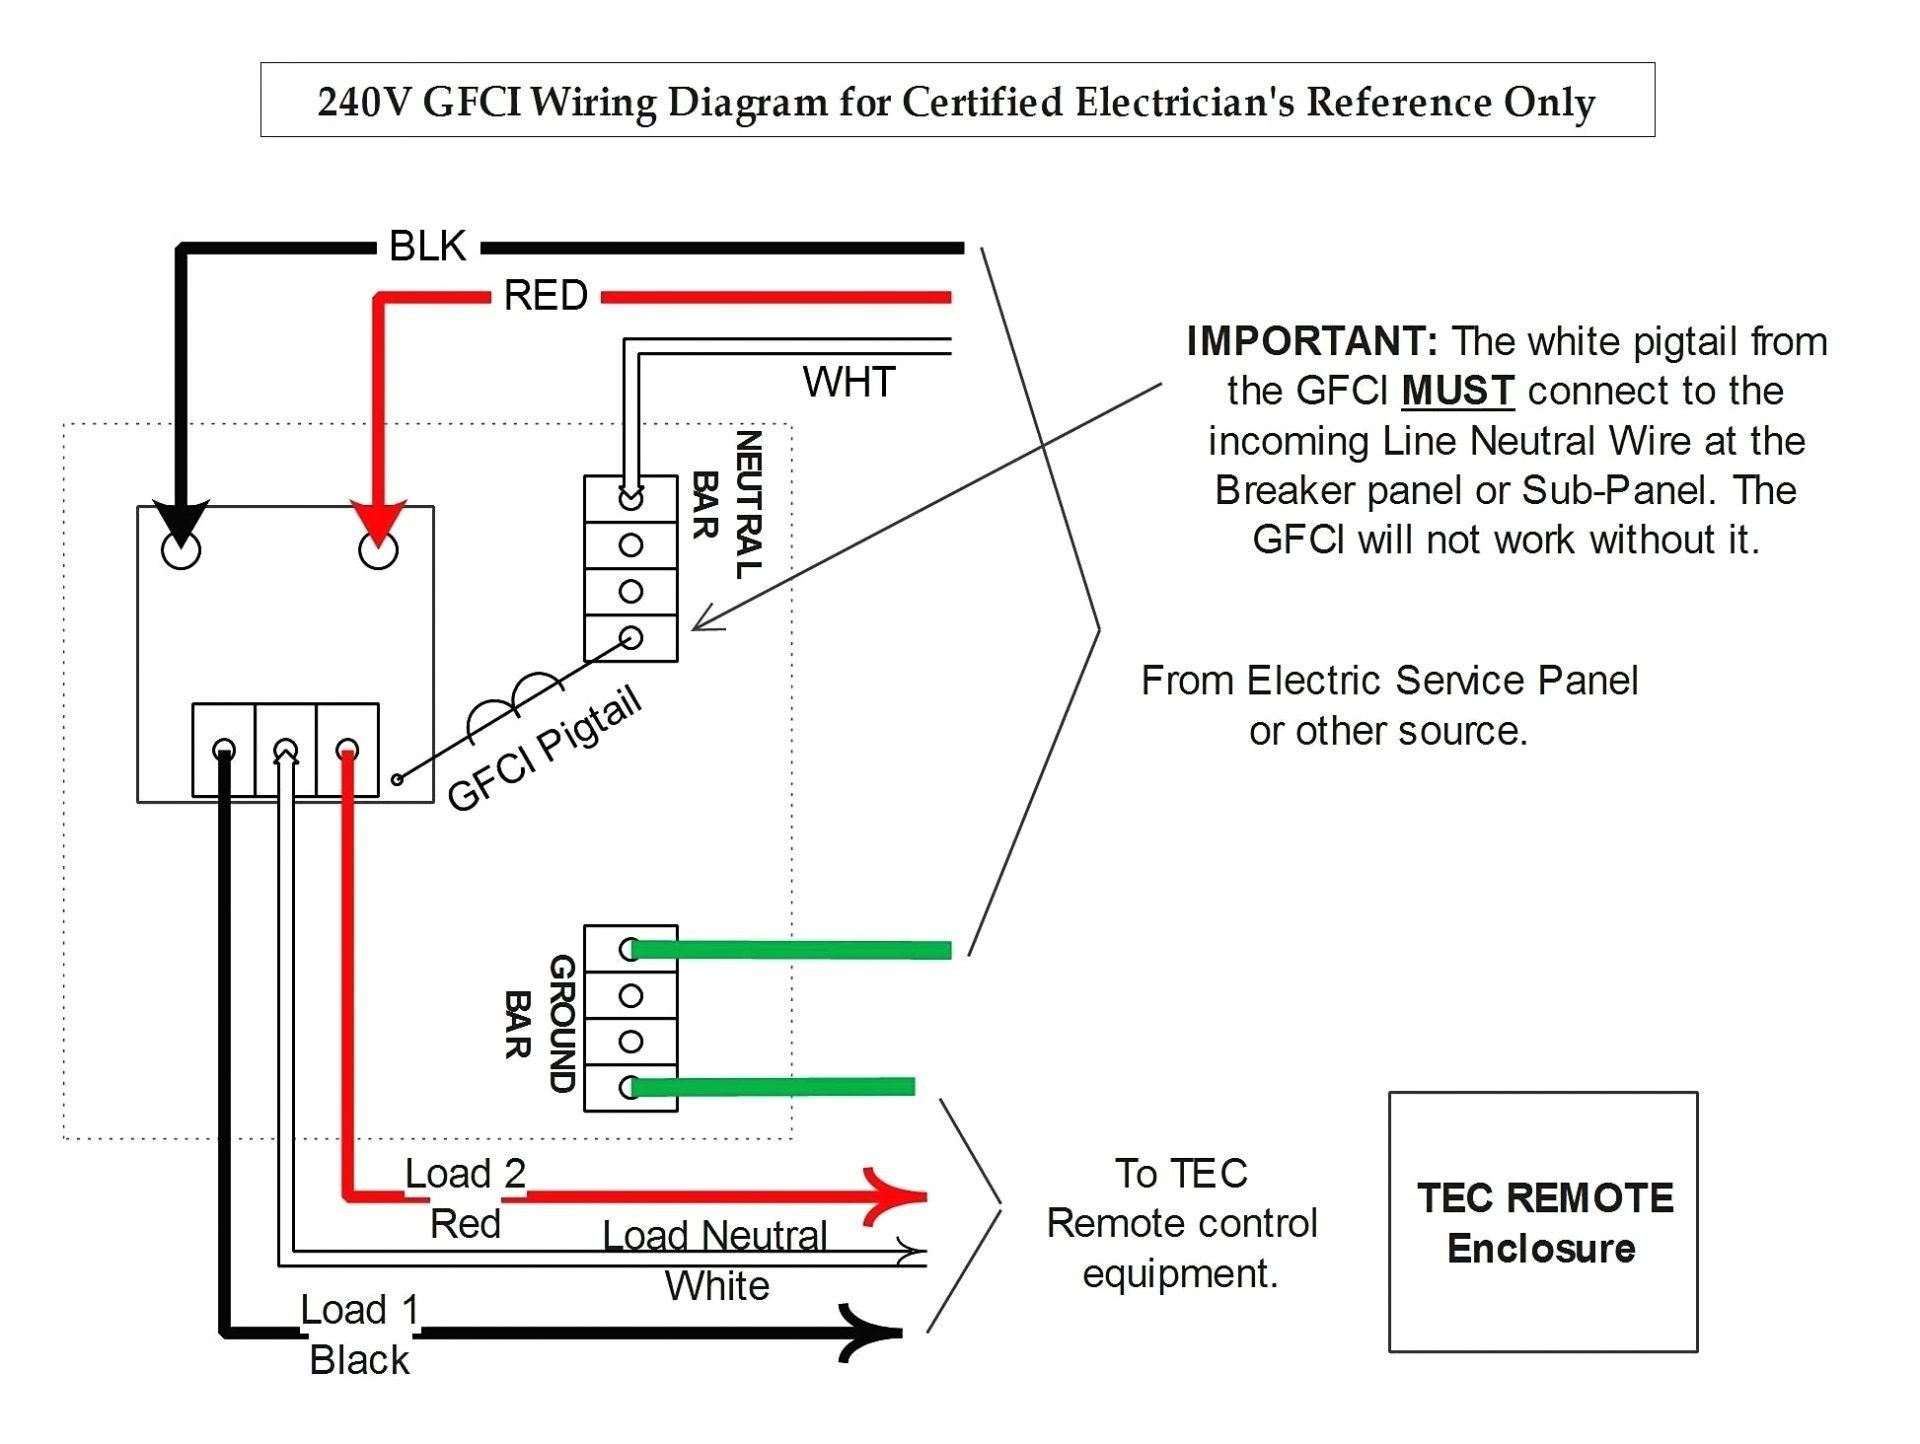 small resolution of unique wiring diagram for extractor fan with timer diagram diagramsample diagramtemplate wiringdiagram diagramchart worksheet worksheettemplate